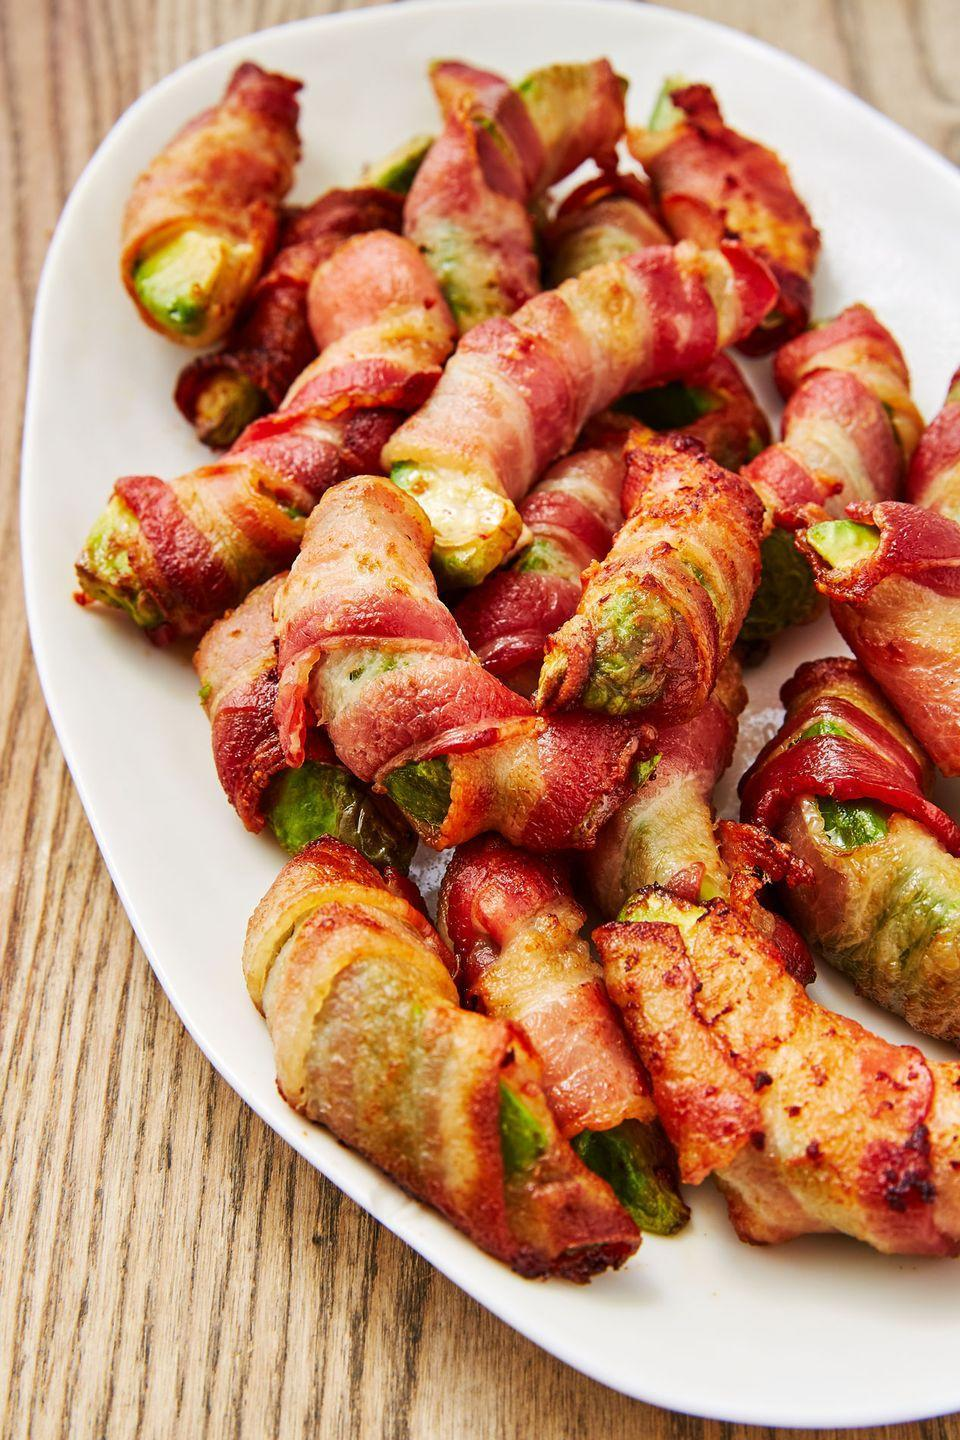 """<p>Take your avocado obsession to the next level with this finger food.</p><p>Get the recipe from <a href=""""https://www.delish.com/cooking/recipe-ideas/recipes/a48261/bacon-avocado-fries-recipe/"""" rel=""""nofollow noopener"""" target=""""_blank"""" data-ylk=""""slk:Delish"""" class=""""link rapid-noclick-resp"""">Delish</a>.</p>"""